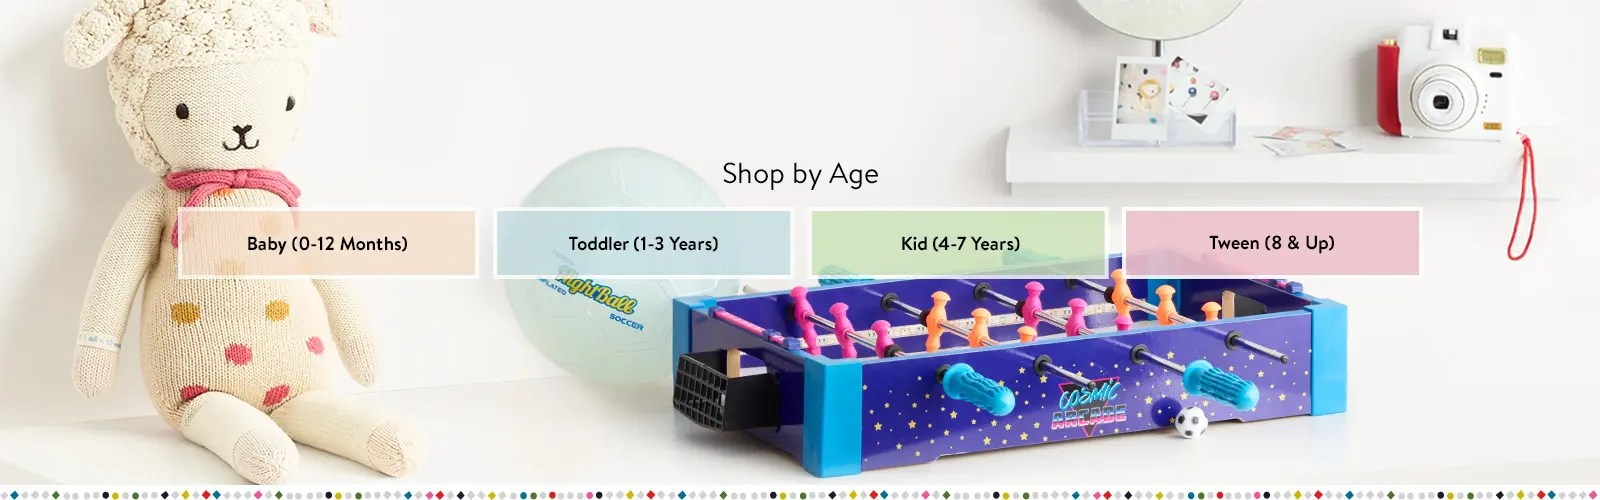 hight resolution of shop kids toys by